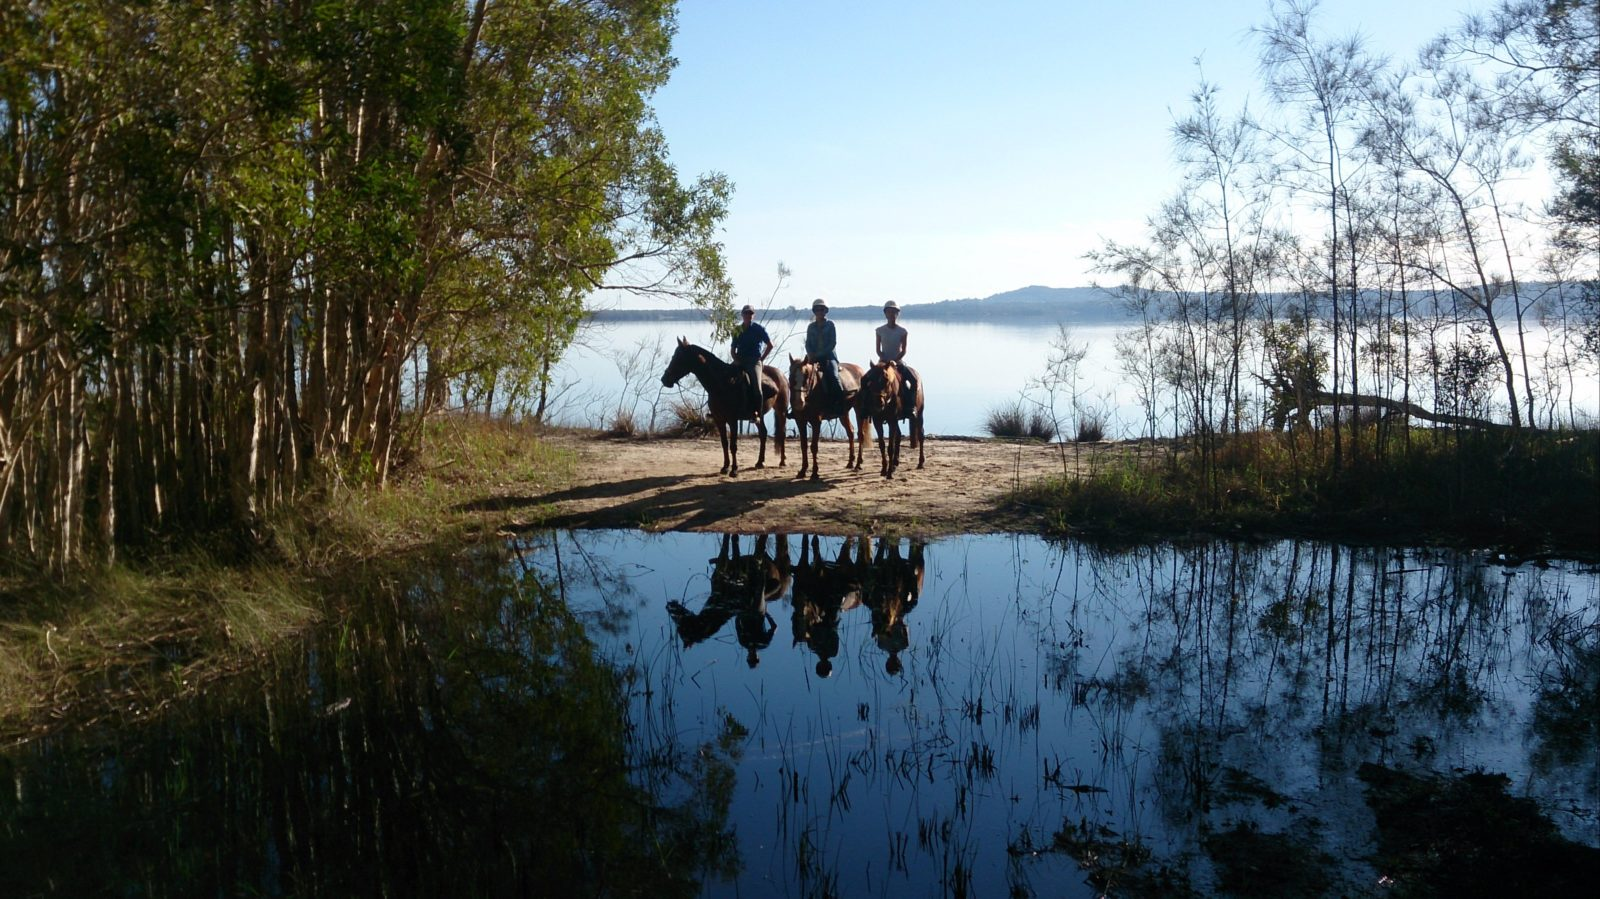 Our guide and two riders refections